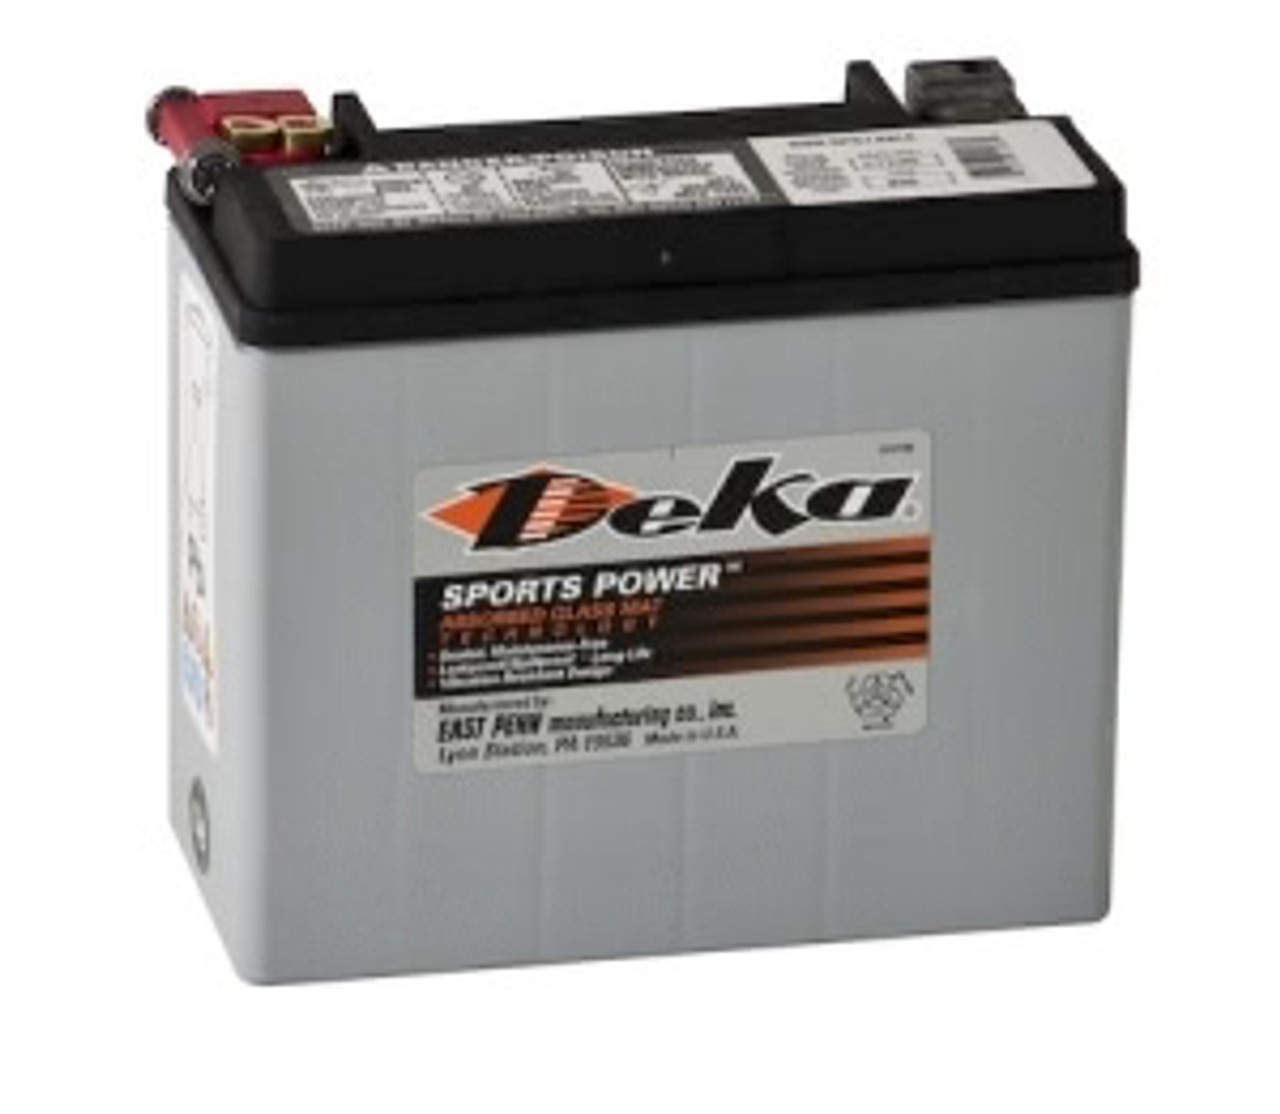 Harley Davidson Battery >> Harley Davidson 65989 97c Battery Replacement